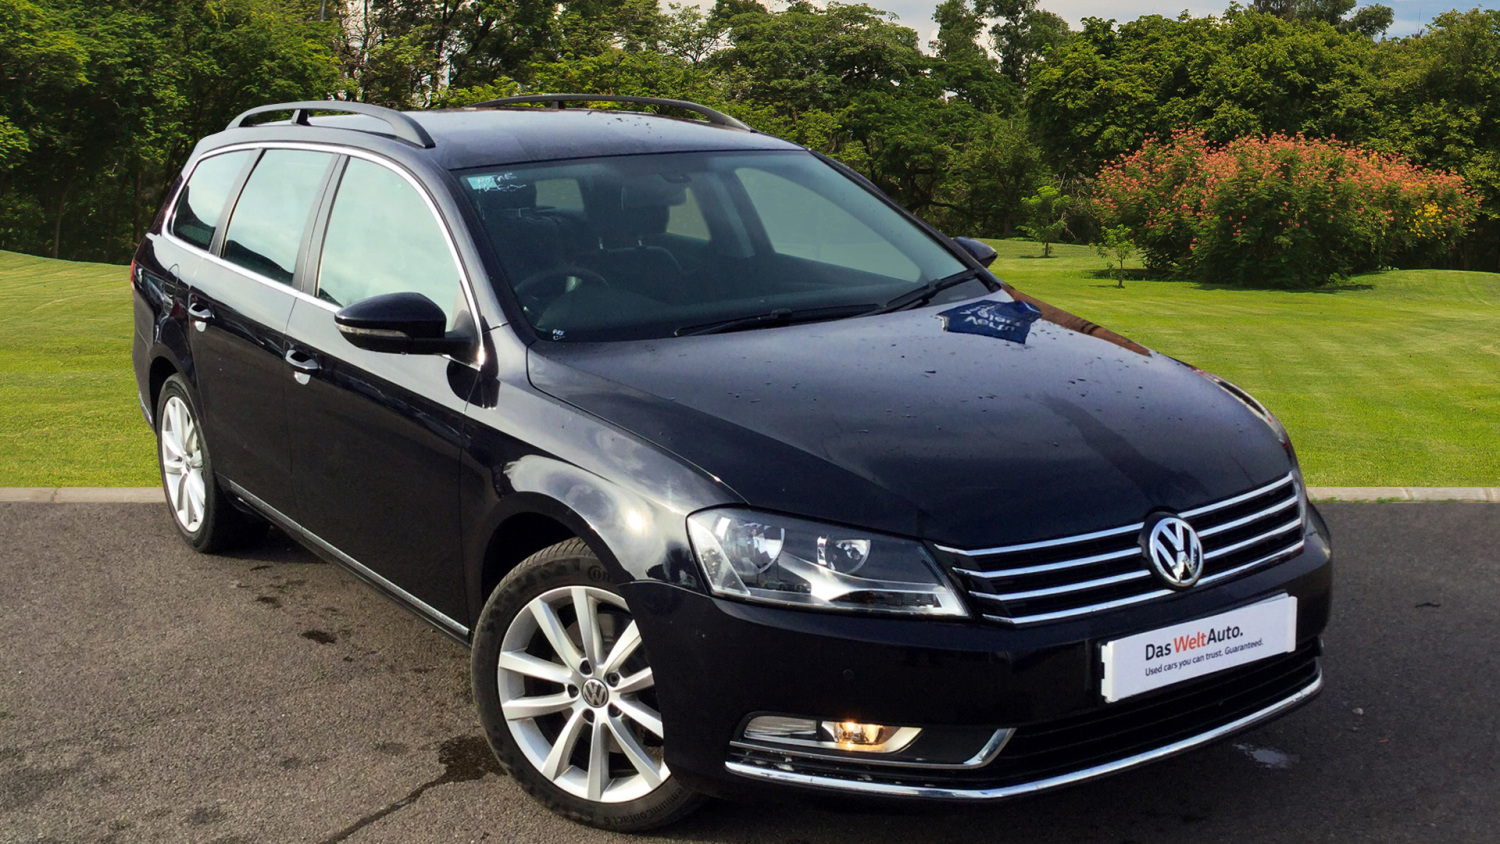 used volkswagen passat 2 0 tdi bluemotion tech executive 5dr dsg diesel estate for sale. Black Bedroom Furniture Sets. Home Design Ideas